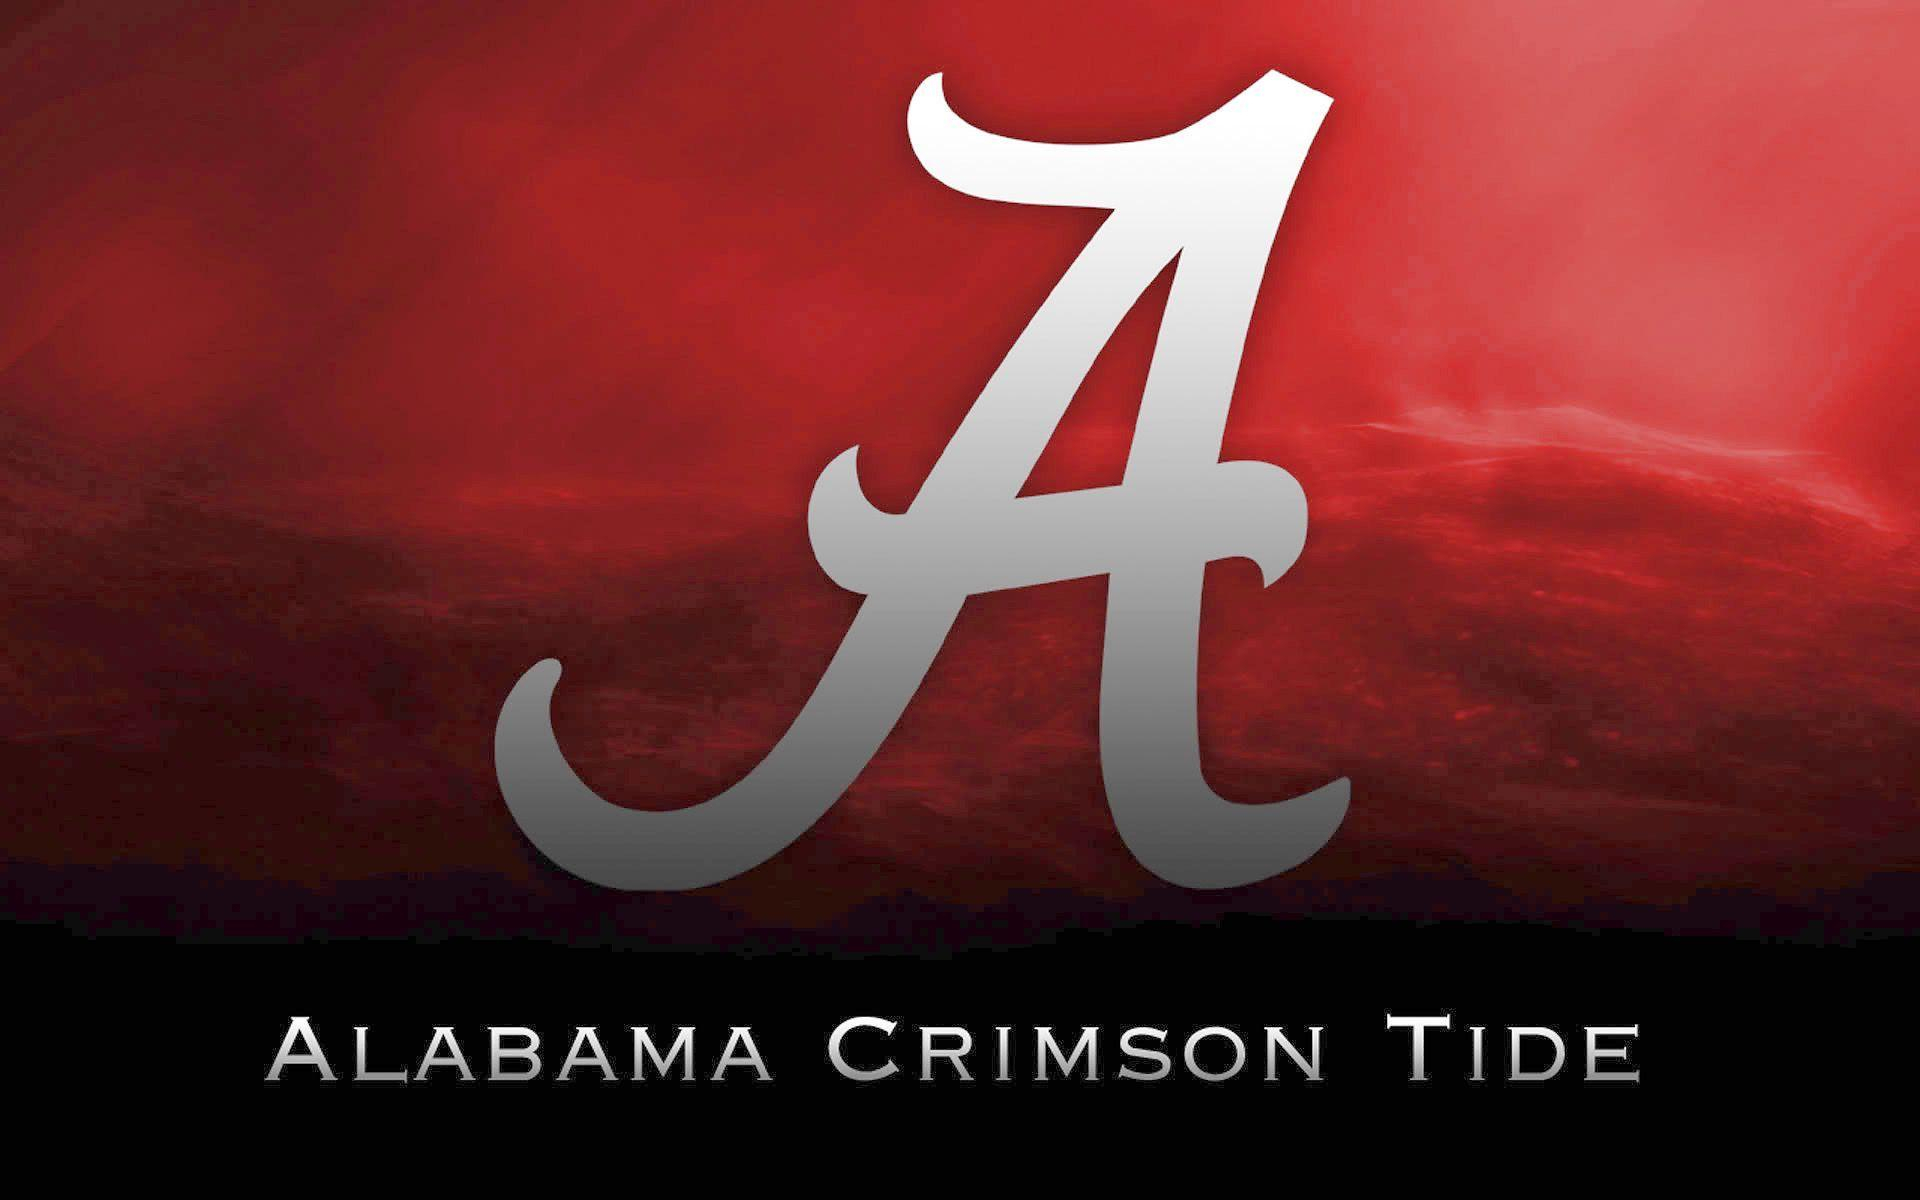 free alabama crimson tide wallpapers - wallpaper cave